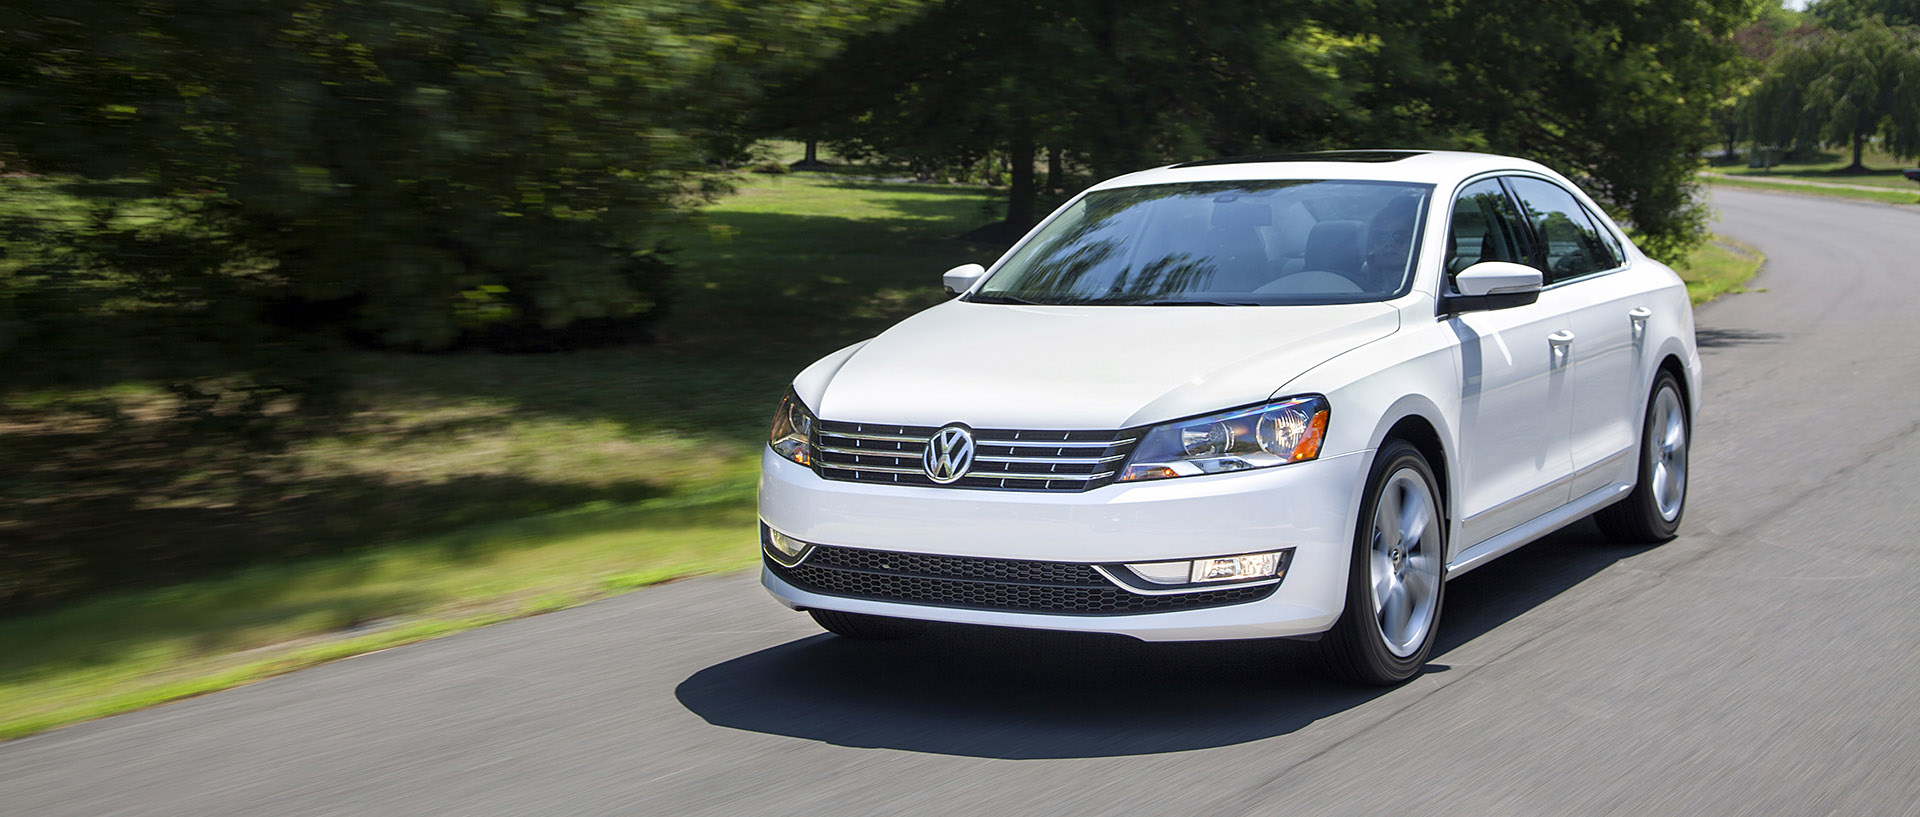 Register And Sell A Volkswagen Diesel Consumer Reports